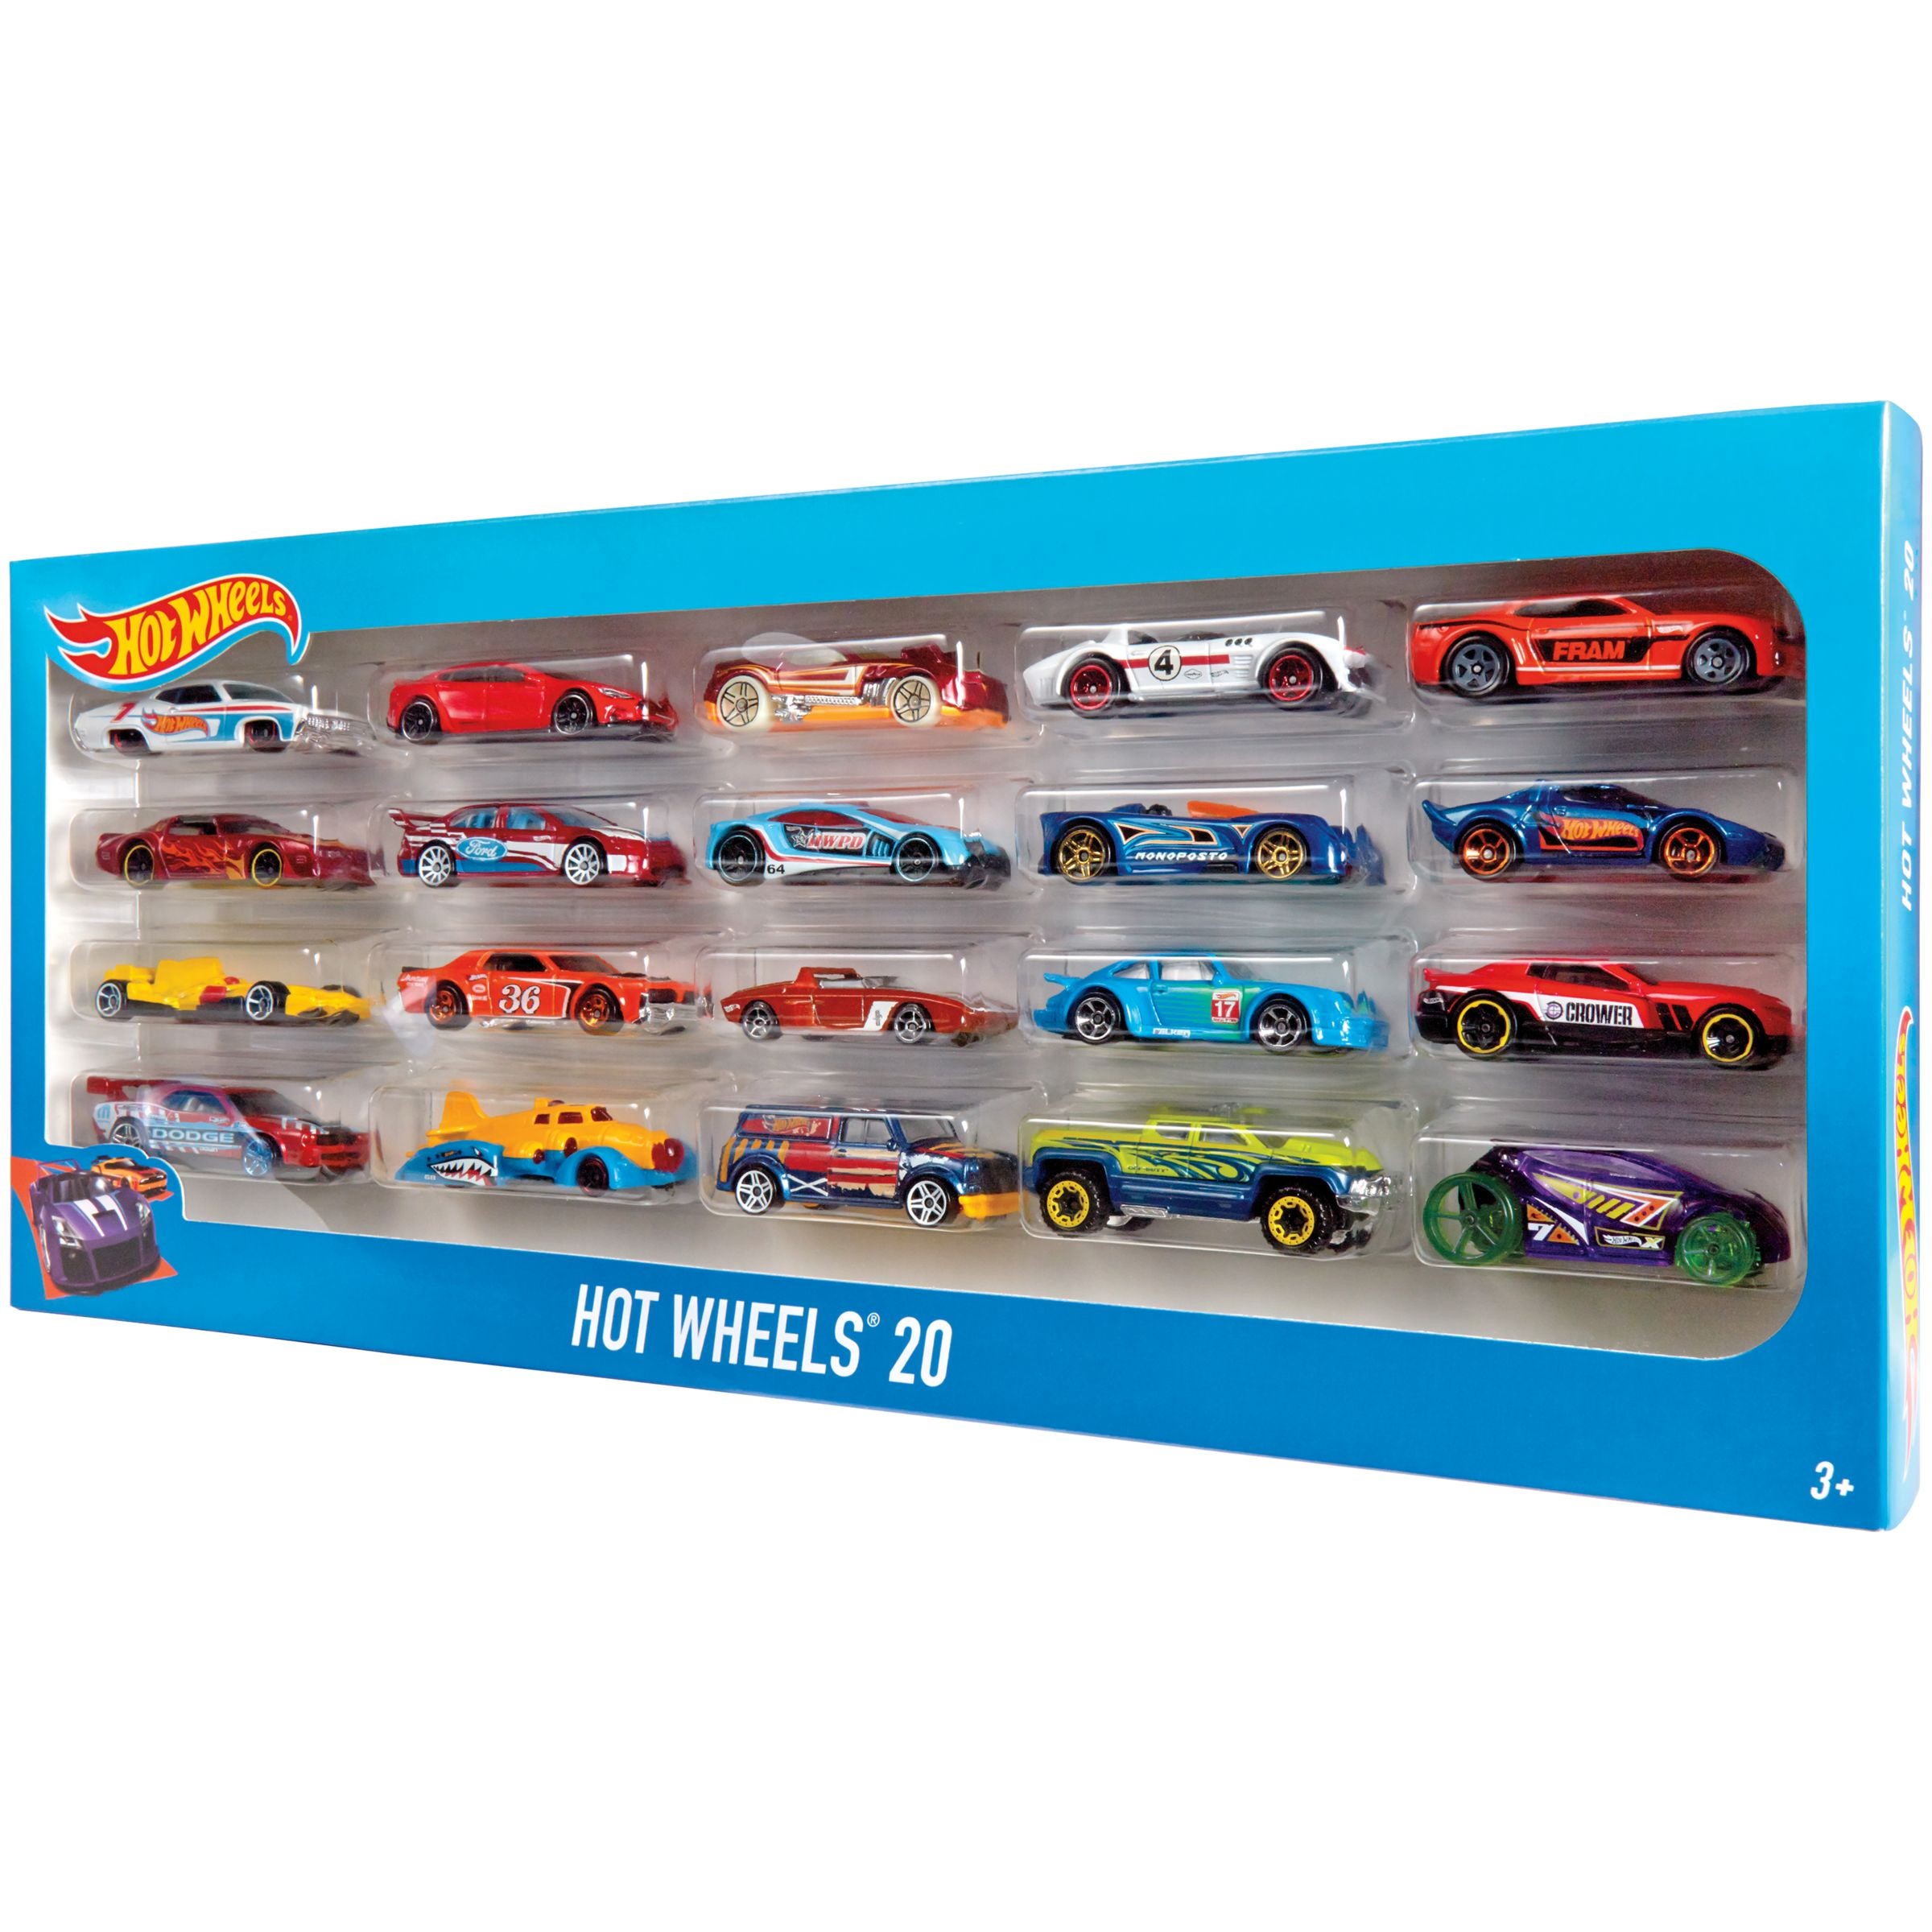 Hot Wheels Hot Wheels Character Cars, Pack of 20, Assorted